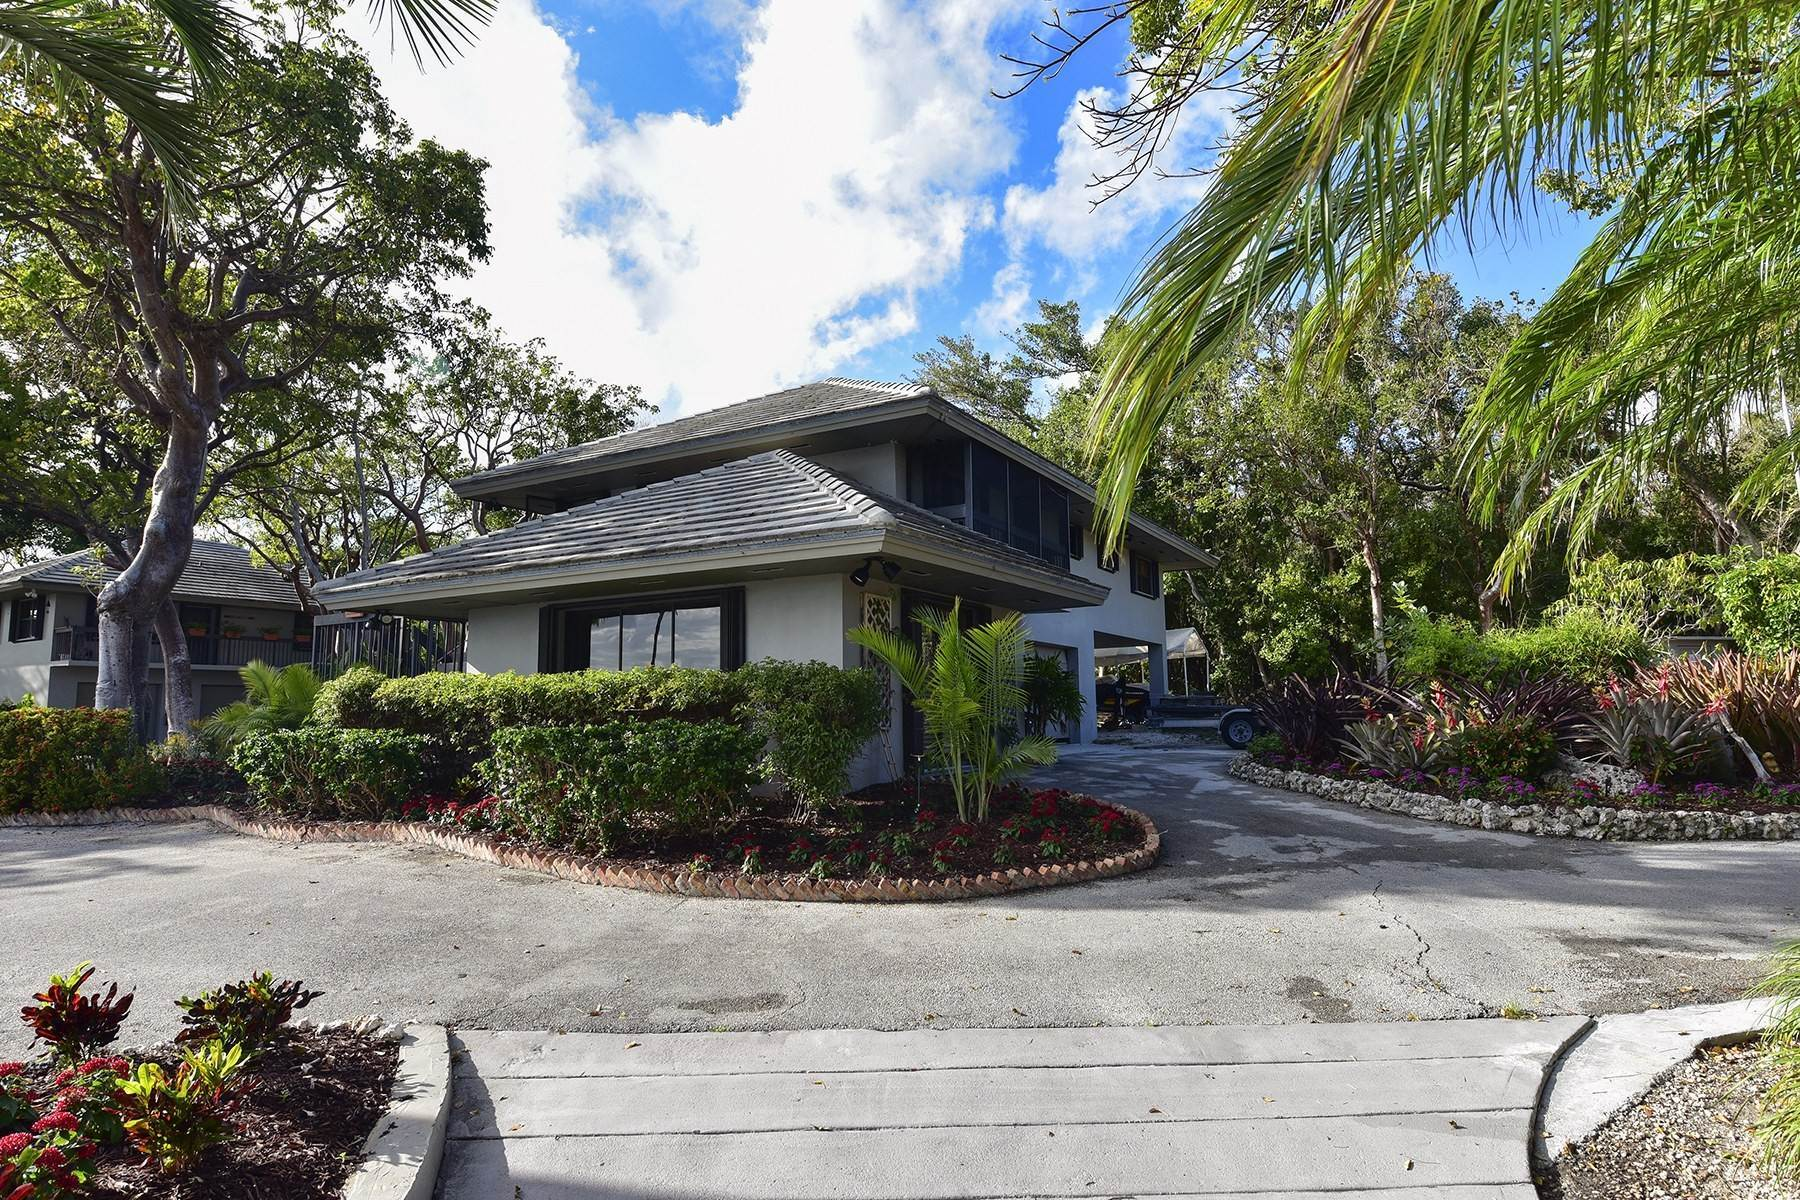 20. Property 为 销售 在 Pumpkin Key - Private Island, Key Largo, FL Pumpkin Key - Private Island 拉哥, 佛罗里达州 33037 美国